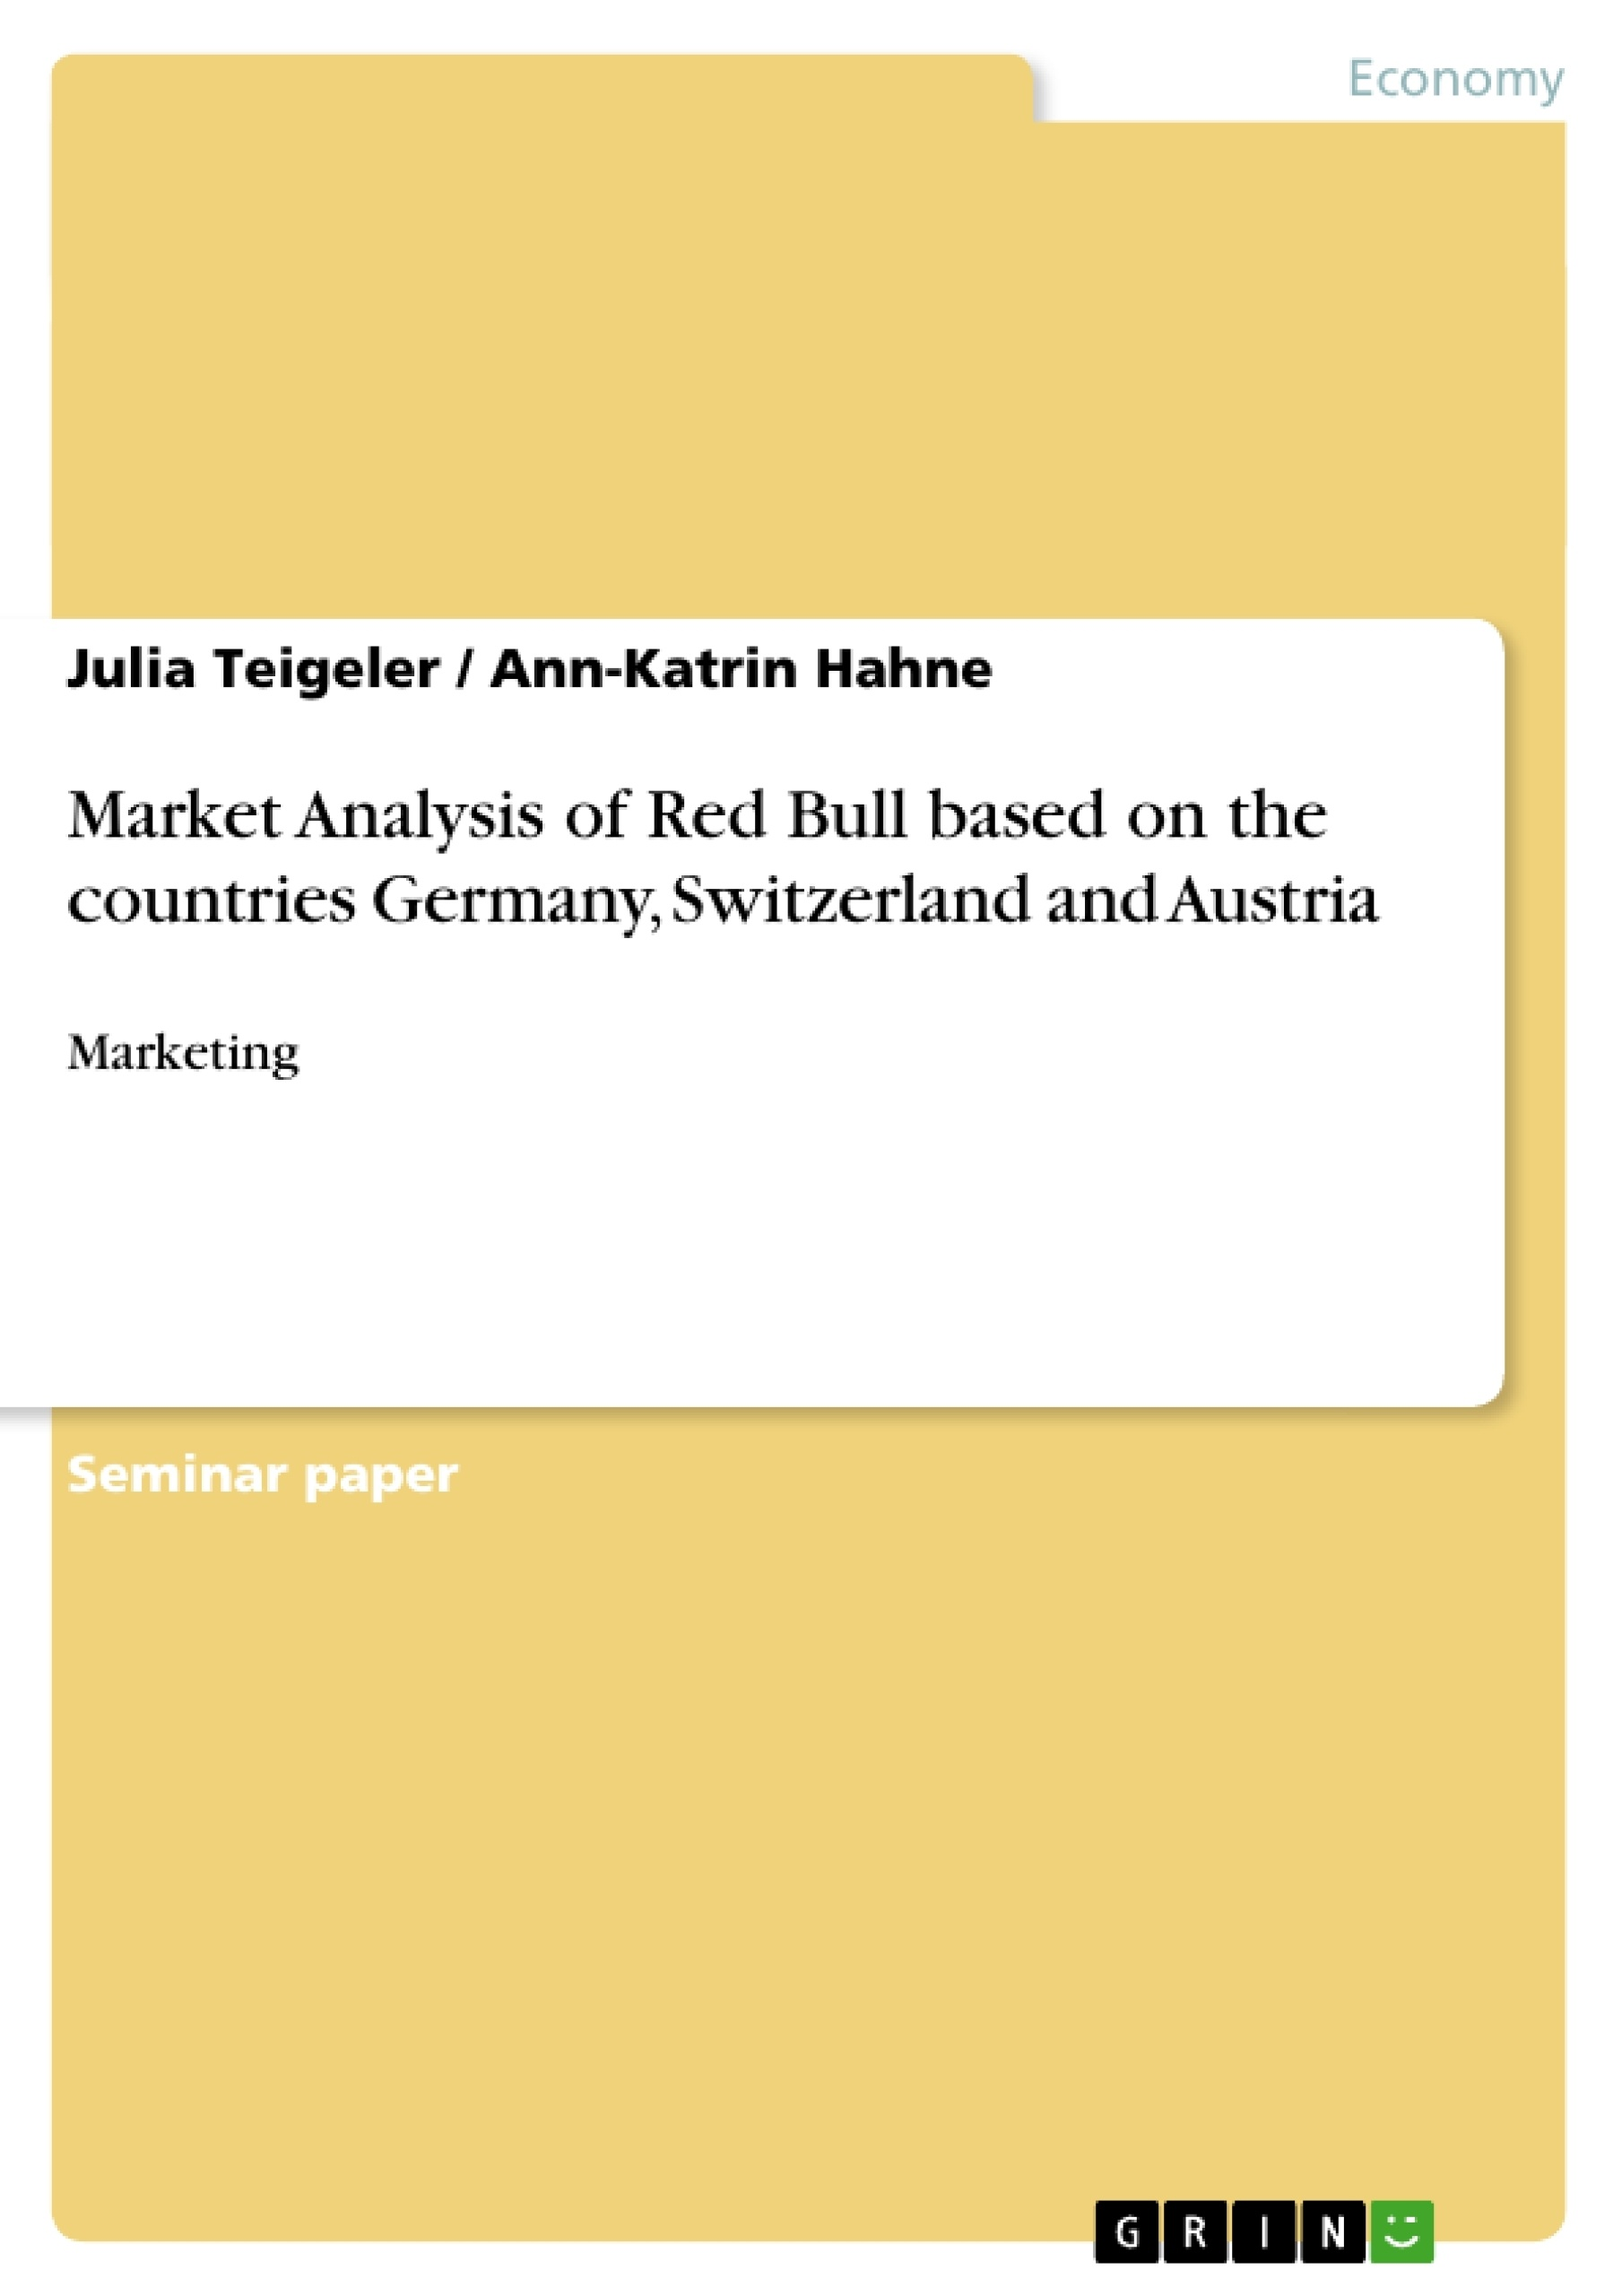 Title: Market Analysis of Red Bull based on the countries Germany, Switzerland and Austria